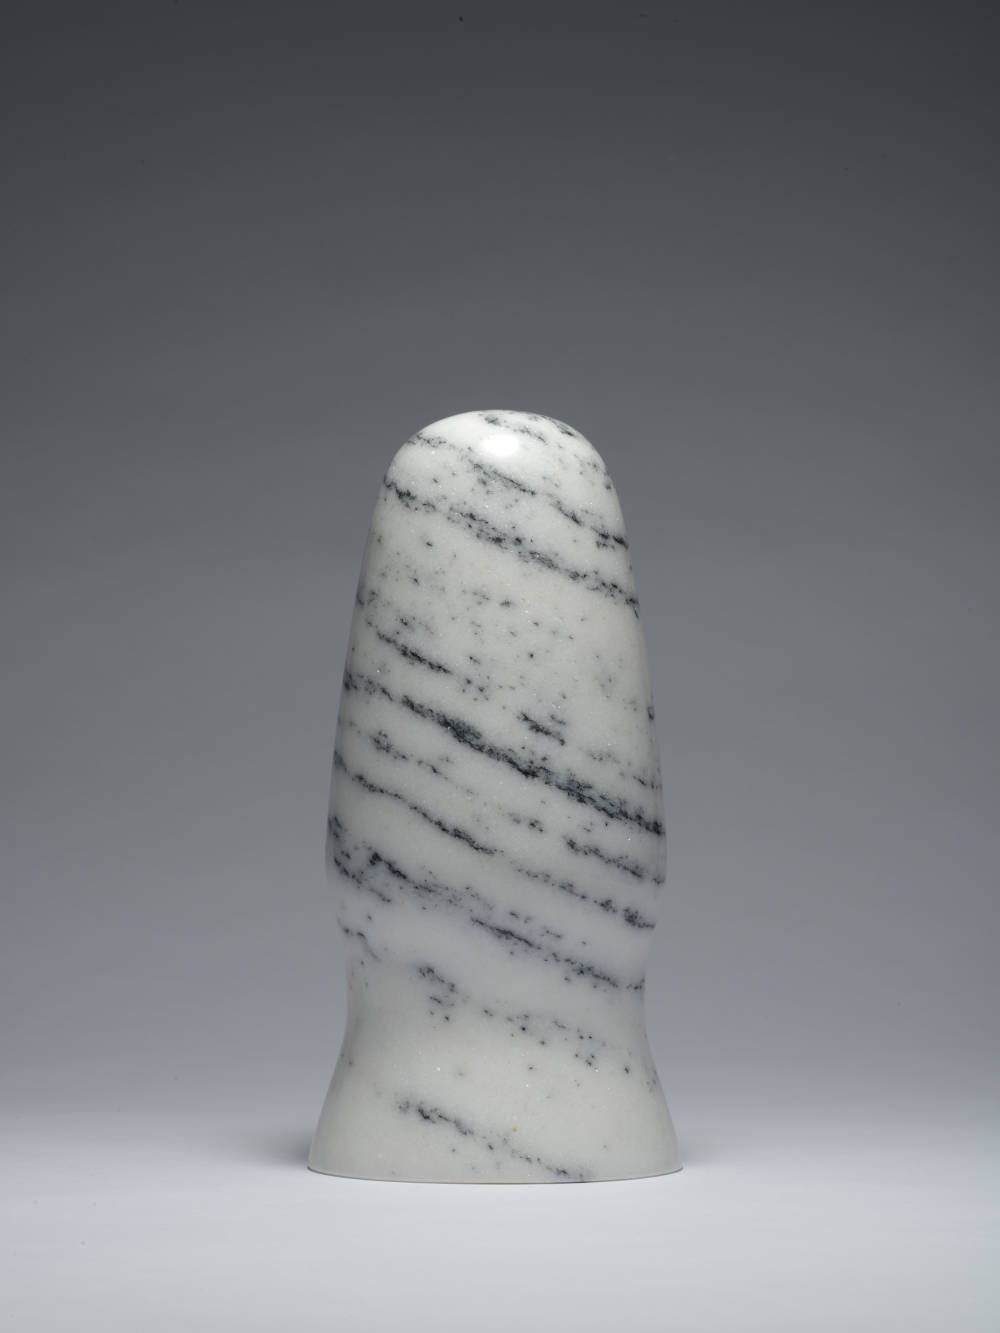 Zhao Zhao, Control 3, 2019. Natural marble 10.24 x 4.84 x 4.84 in (26.0 x 12.3 x 12.3 cm) Courtesy of the artist and Roberts Projects, Los Angeles, California